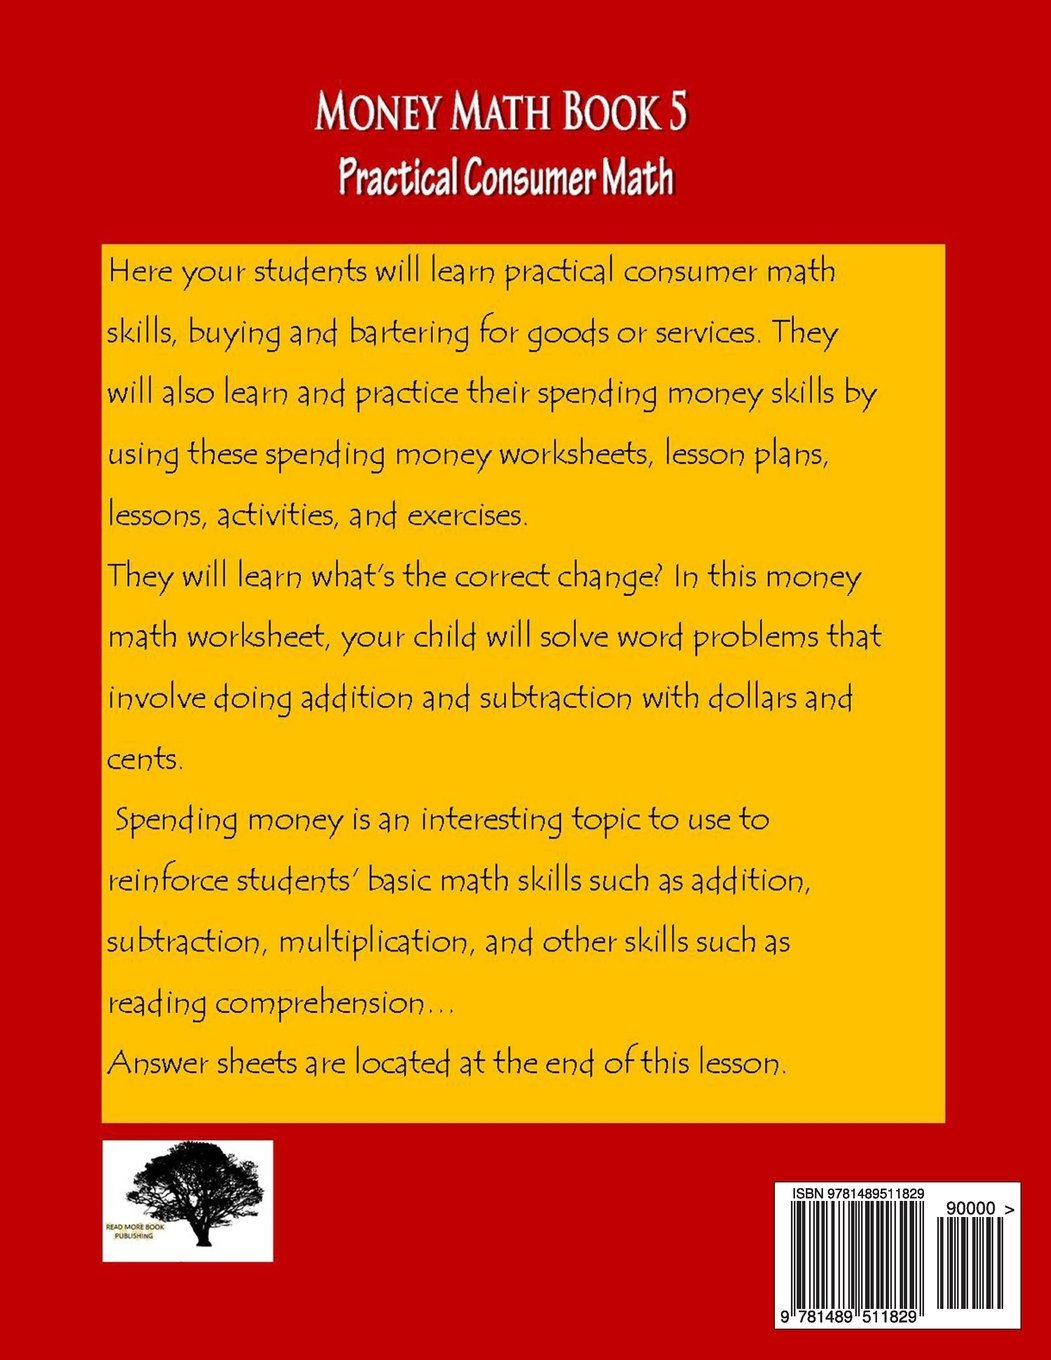 worksheet Practical Money Skills Worksheets money math book 5 practical consumer marilyn more 9781489511829 amazon com books